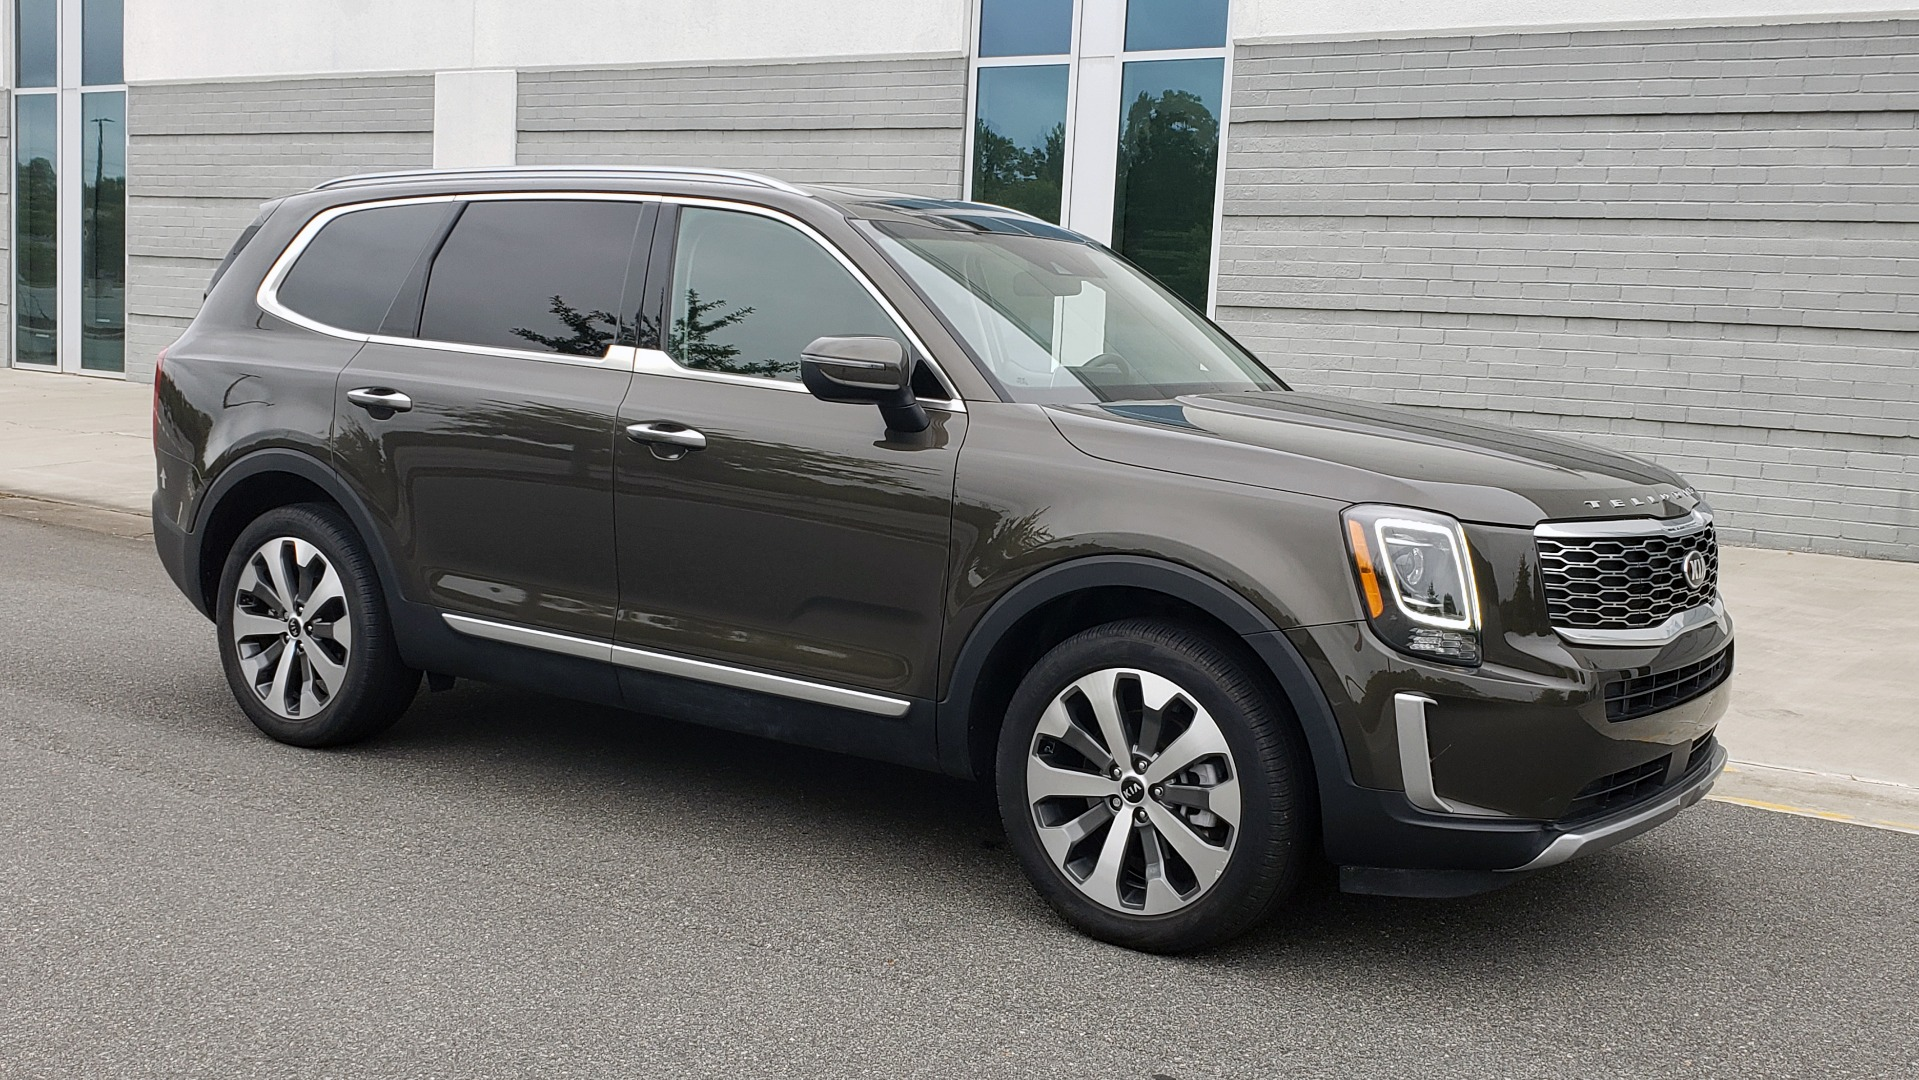 Used 2020 Kia TELLURIDE S 3.8L / FWD / 8-SPD AUTO / SUNROOF / REARVIEW / 20INCH WHEELS for sale $41,595 at Formula Imports in Charlotte NC 28227 9